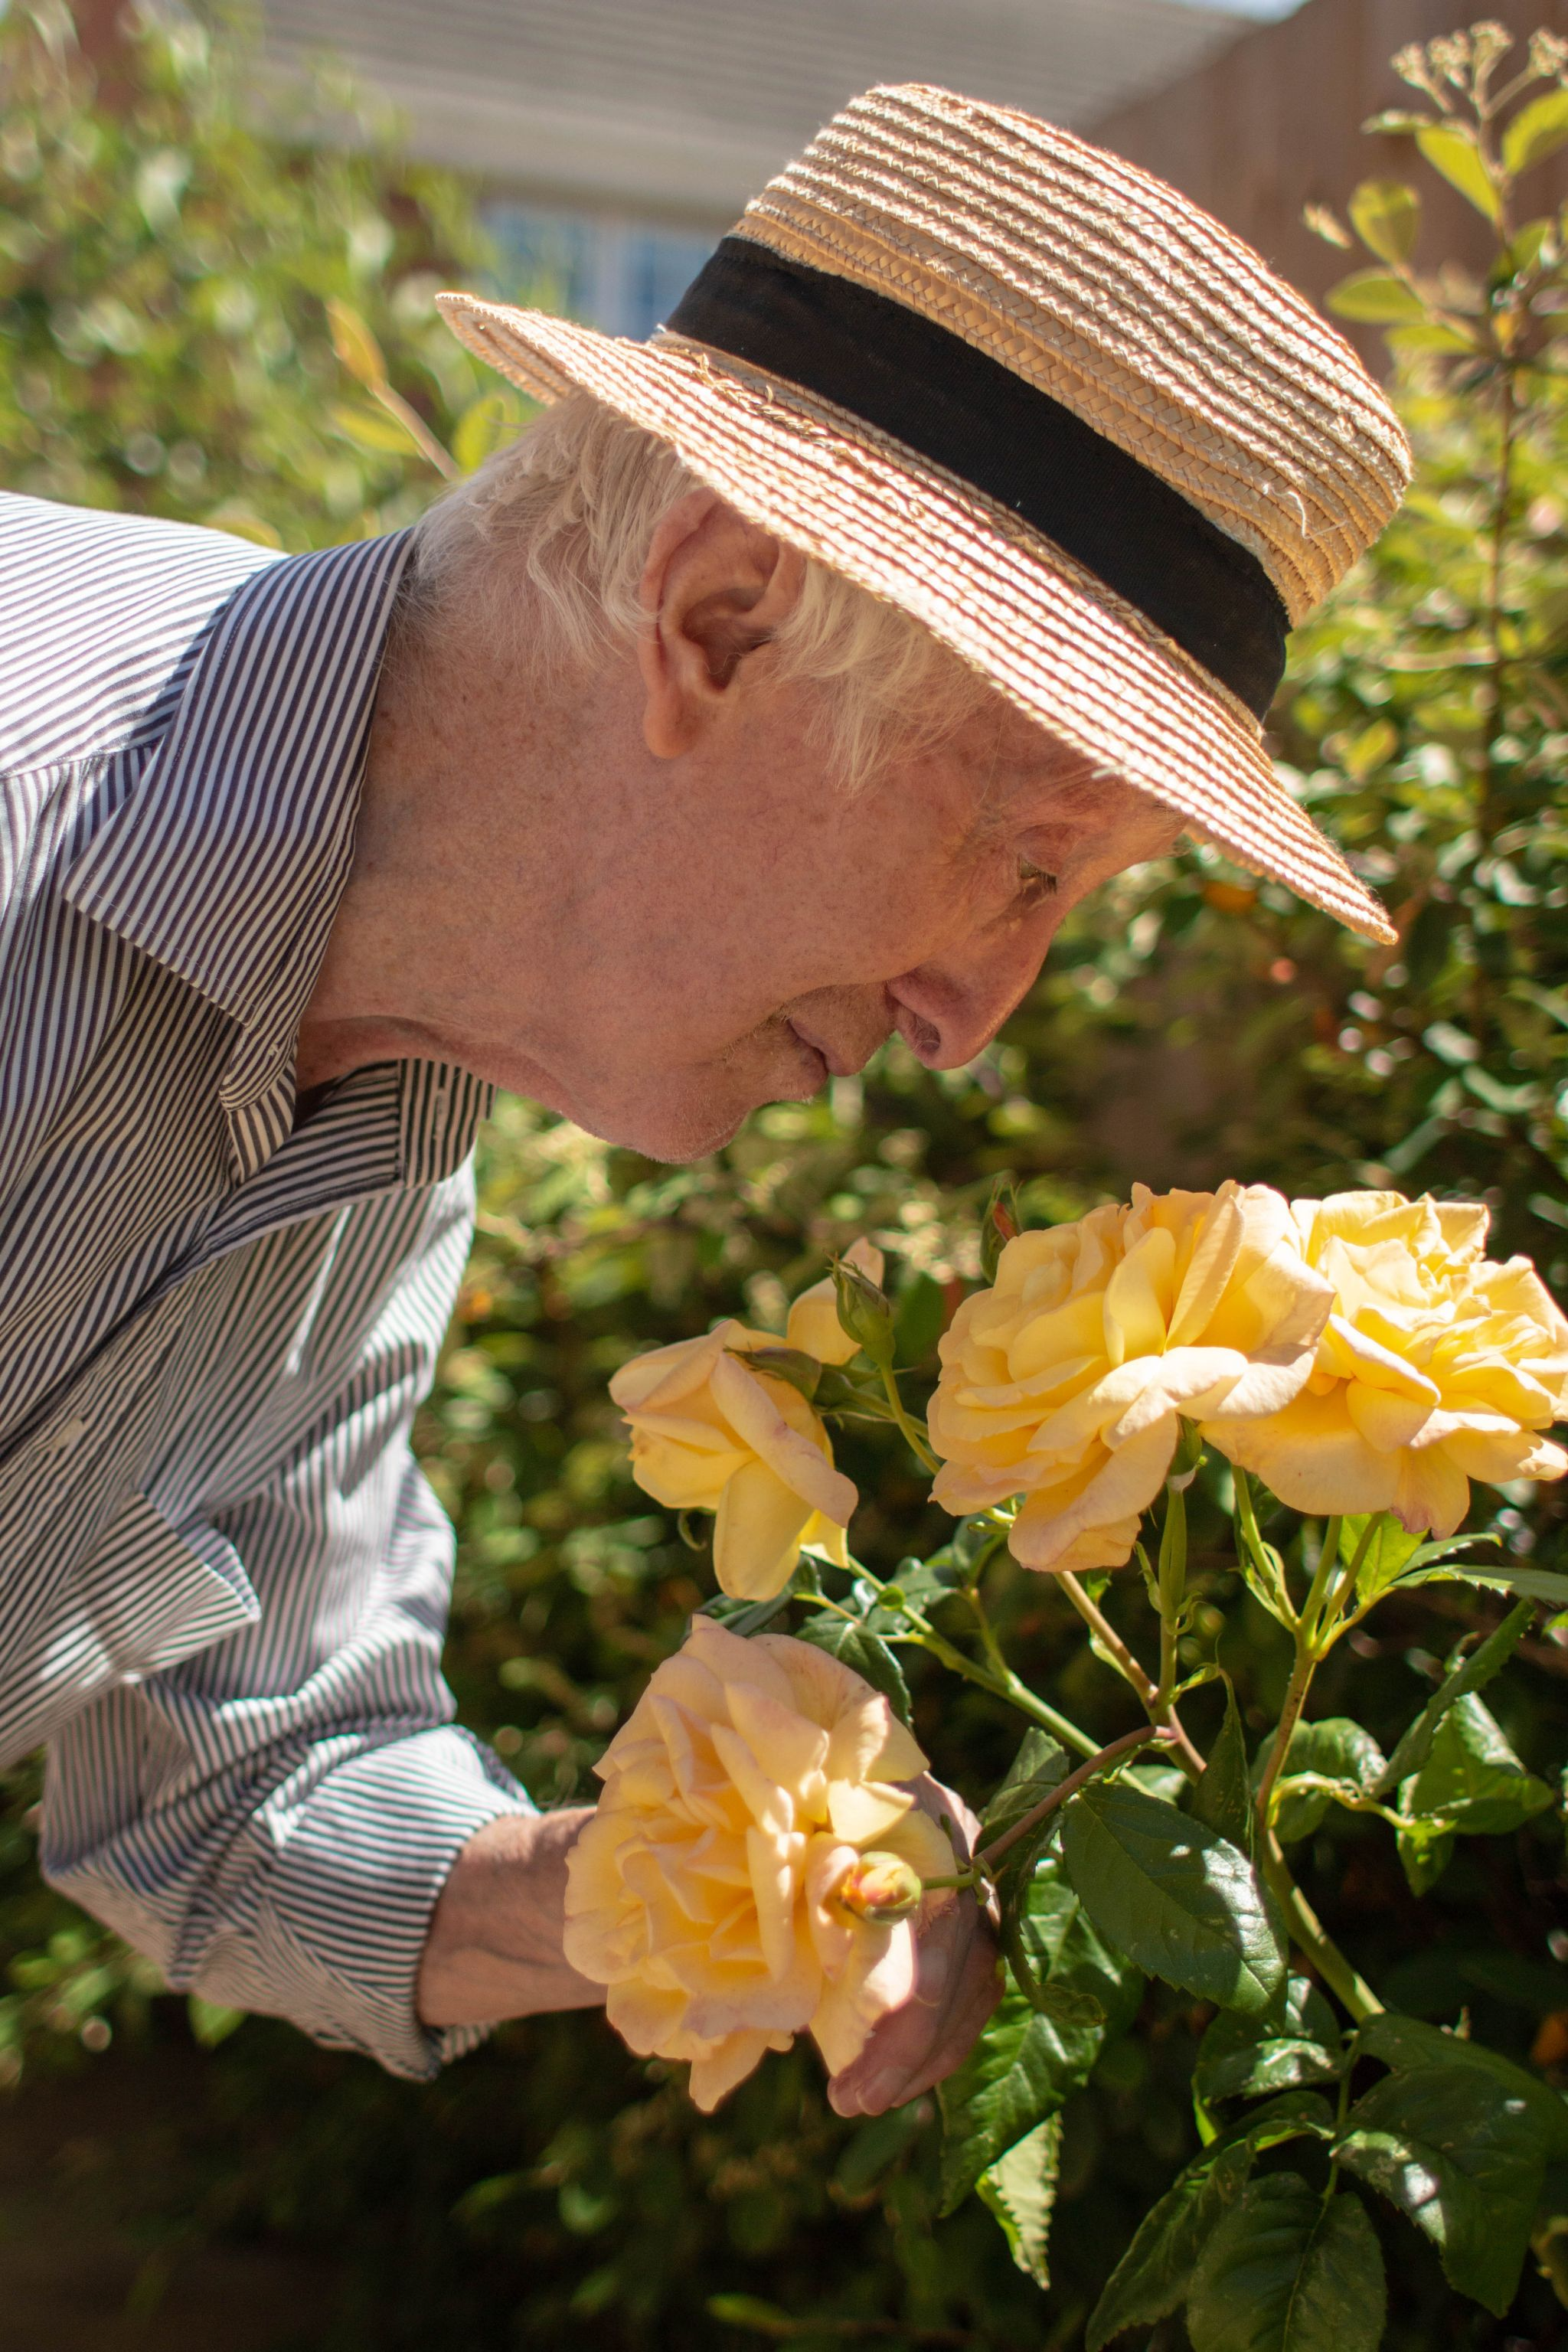 craig healthcare residents lifestyle photography hannah layford resident smelling rose